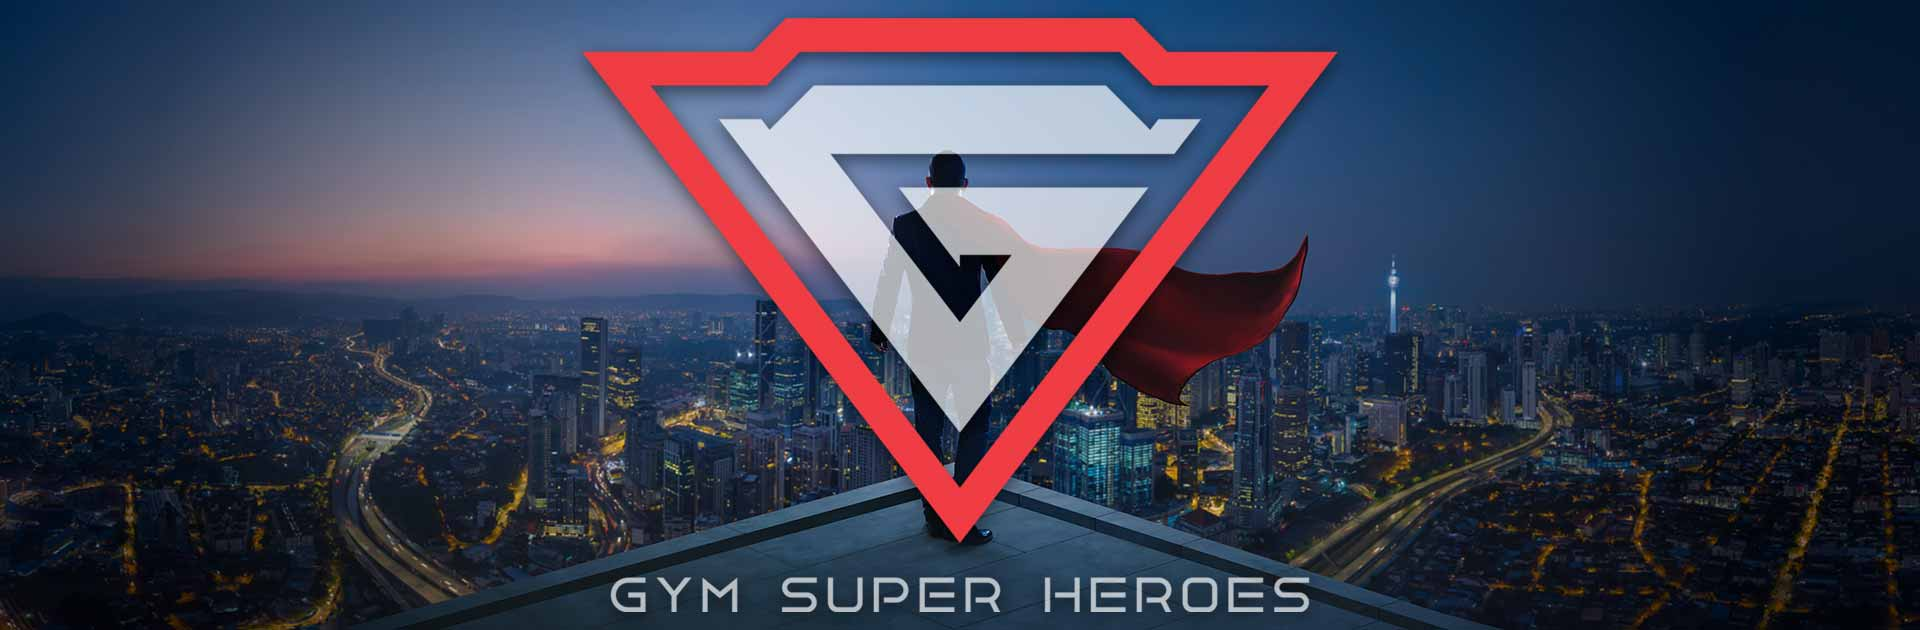 gym super heroes - Super Hero Compression Shirts, Shorts, and Pants